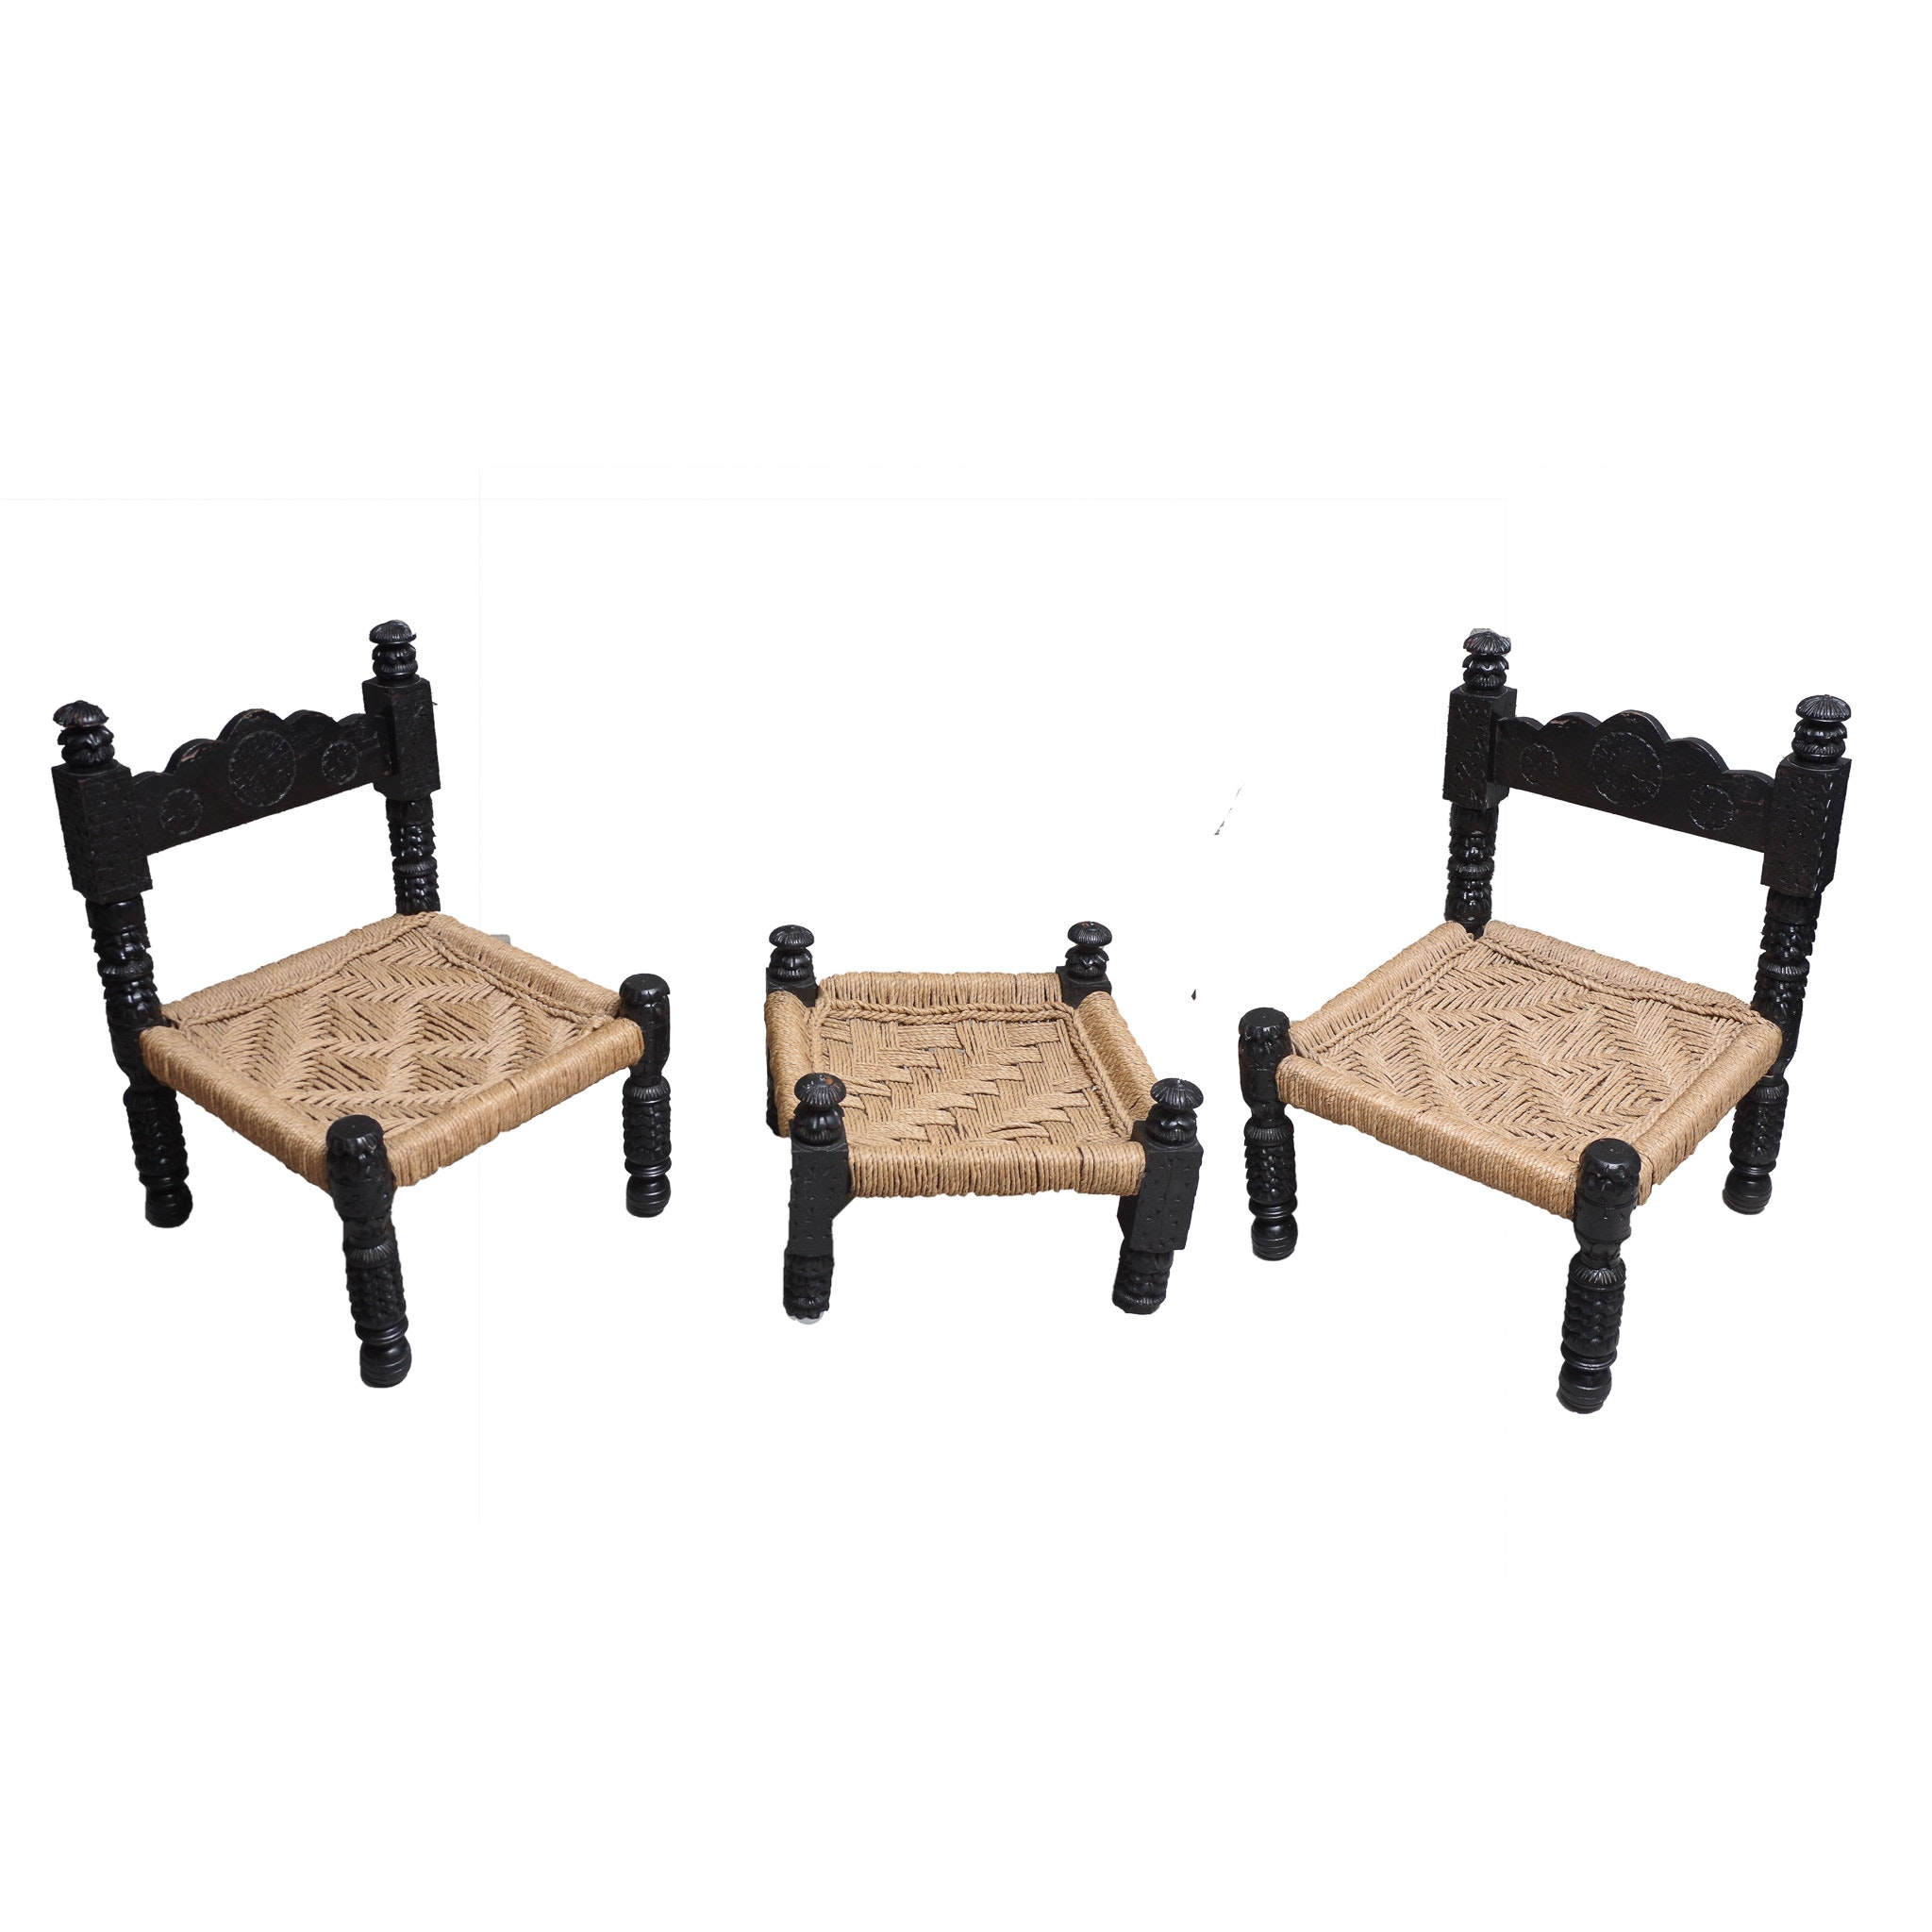 Ordinaire Pair Of Anglo Indian Carved Ebony And Jute Chairs And Ottoman ...